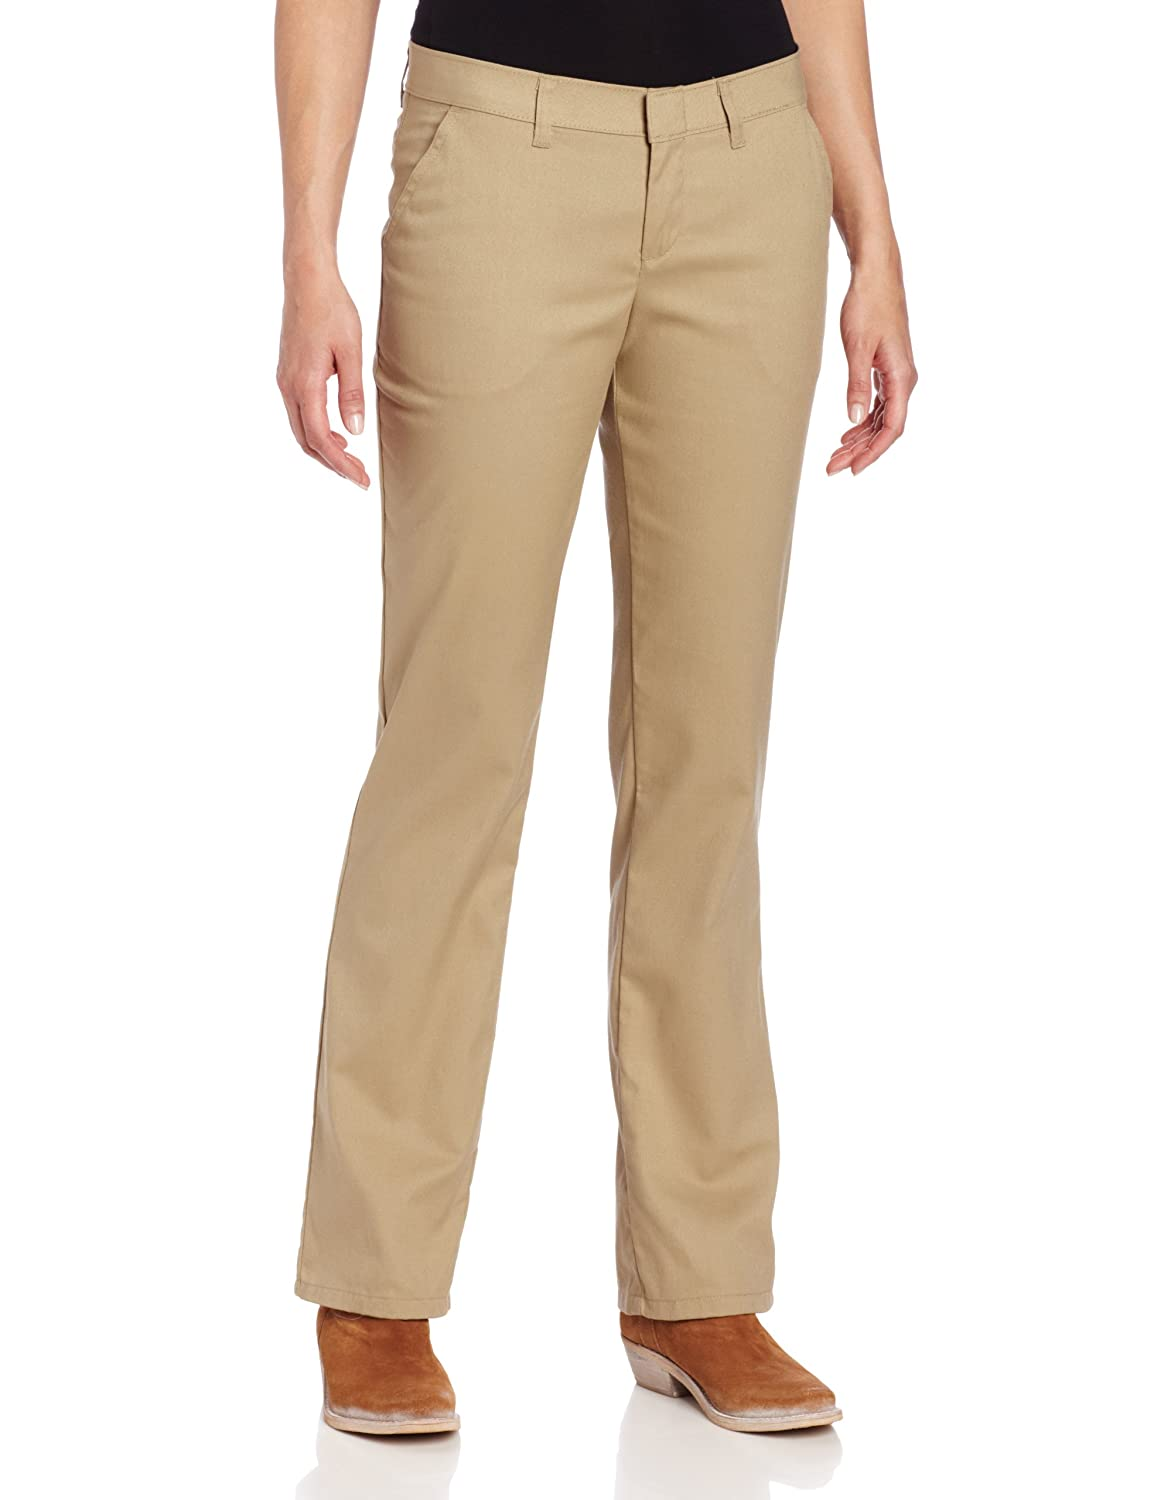 Dickies Womens Wrinkle Resistant Flat Front Twill Pant with Stain Release FP230-RST